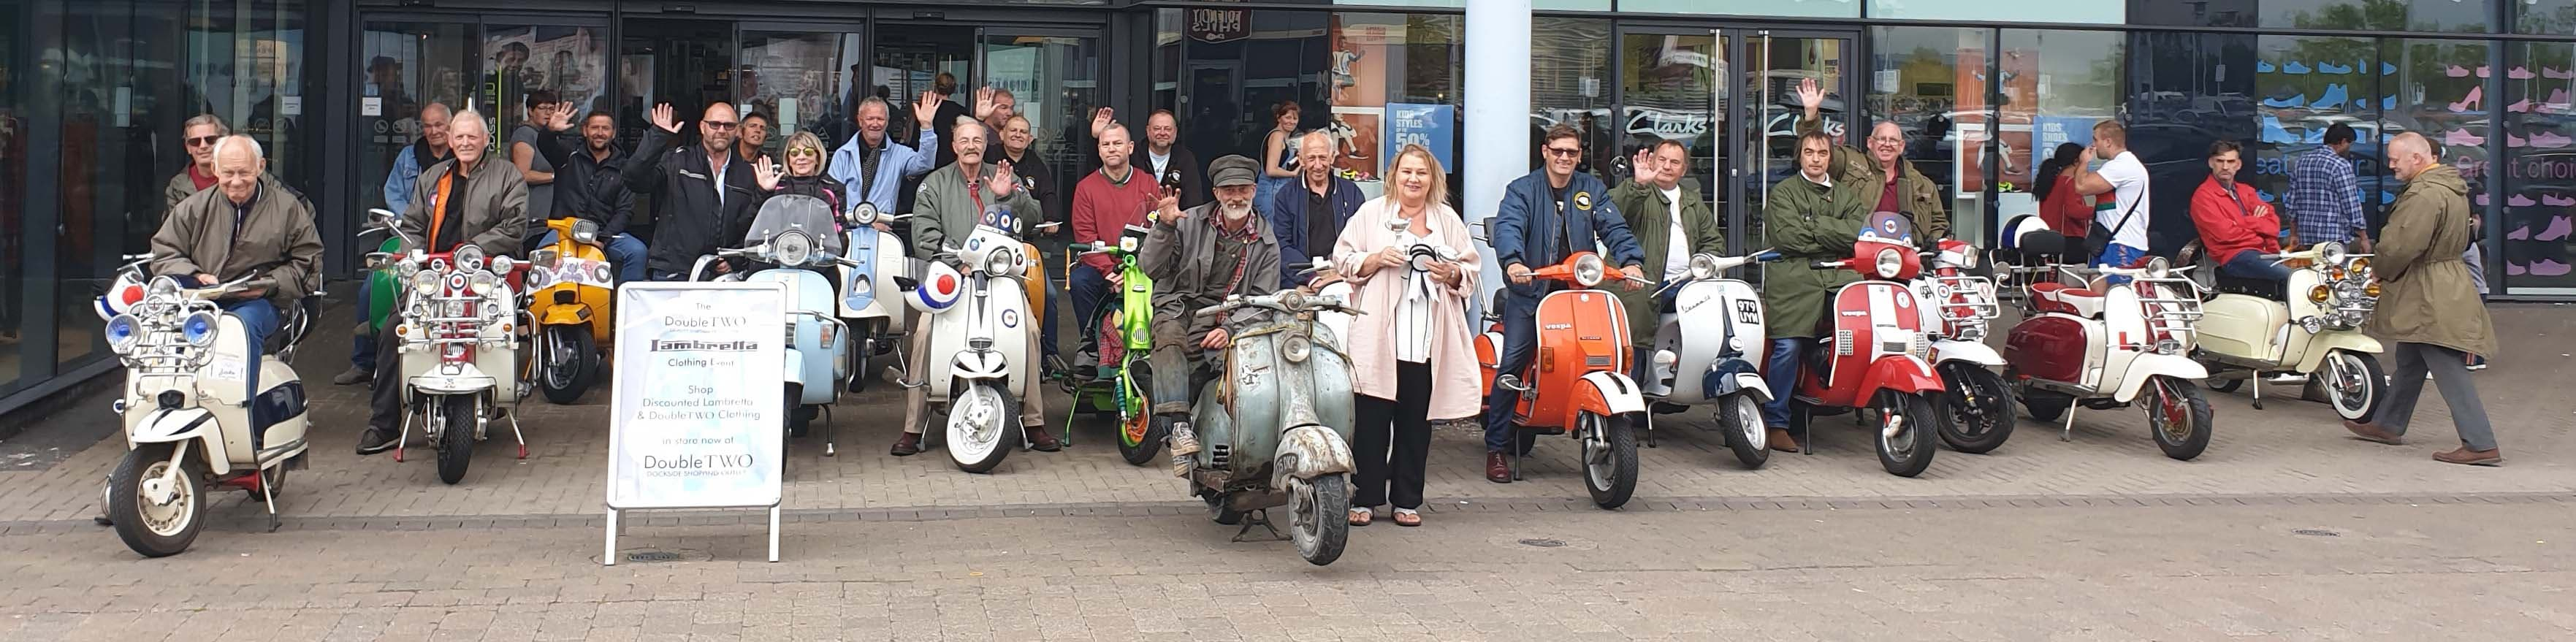 Scooter Clubs ride in to help promote our Lambretta Clothing Range